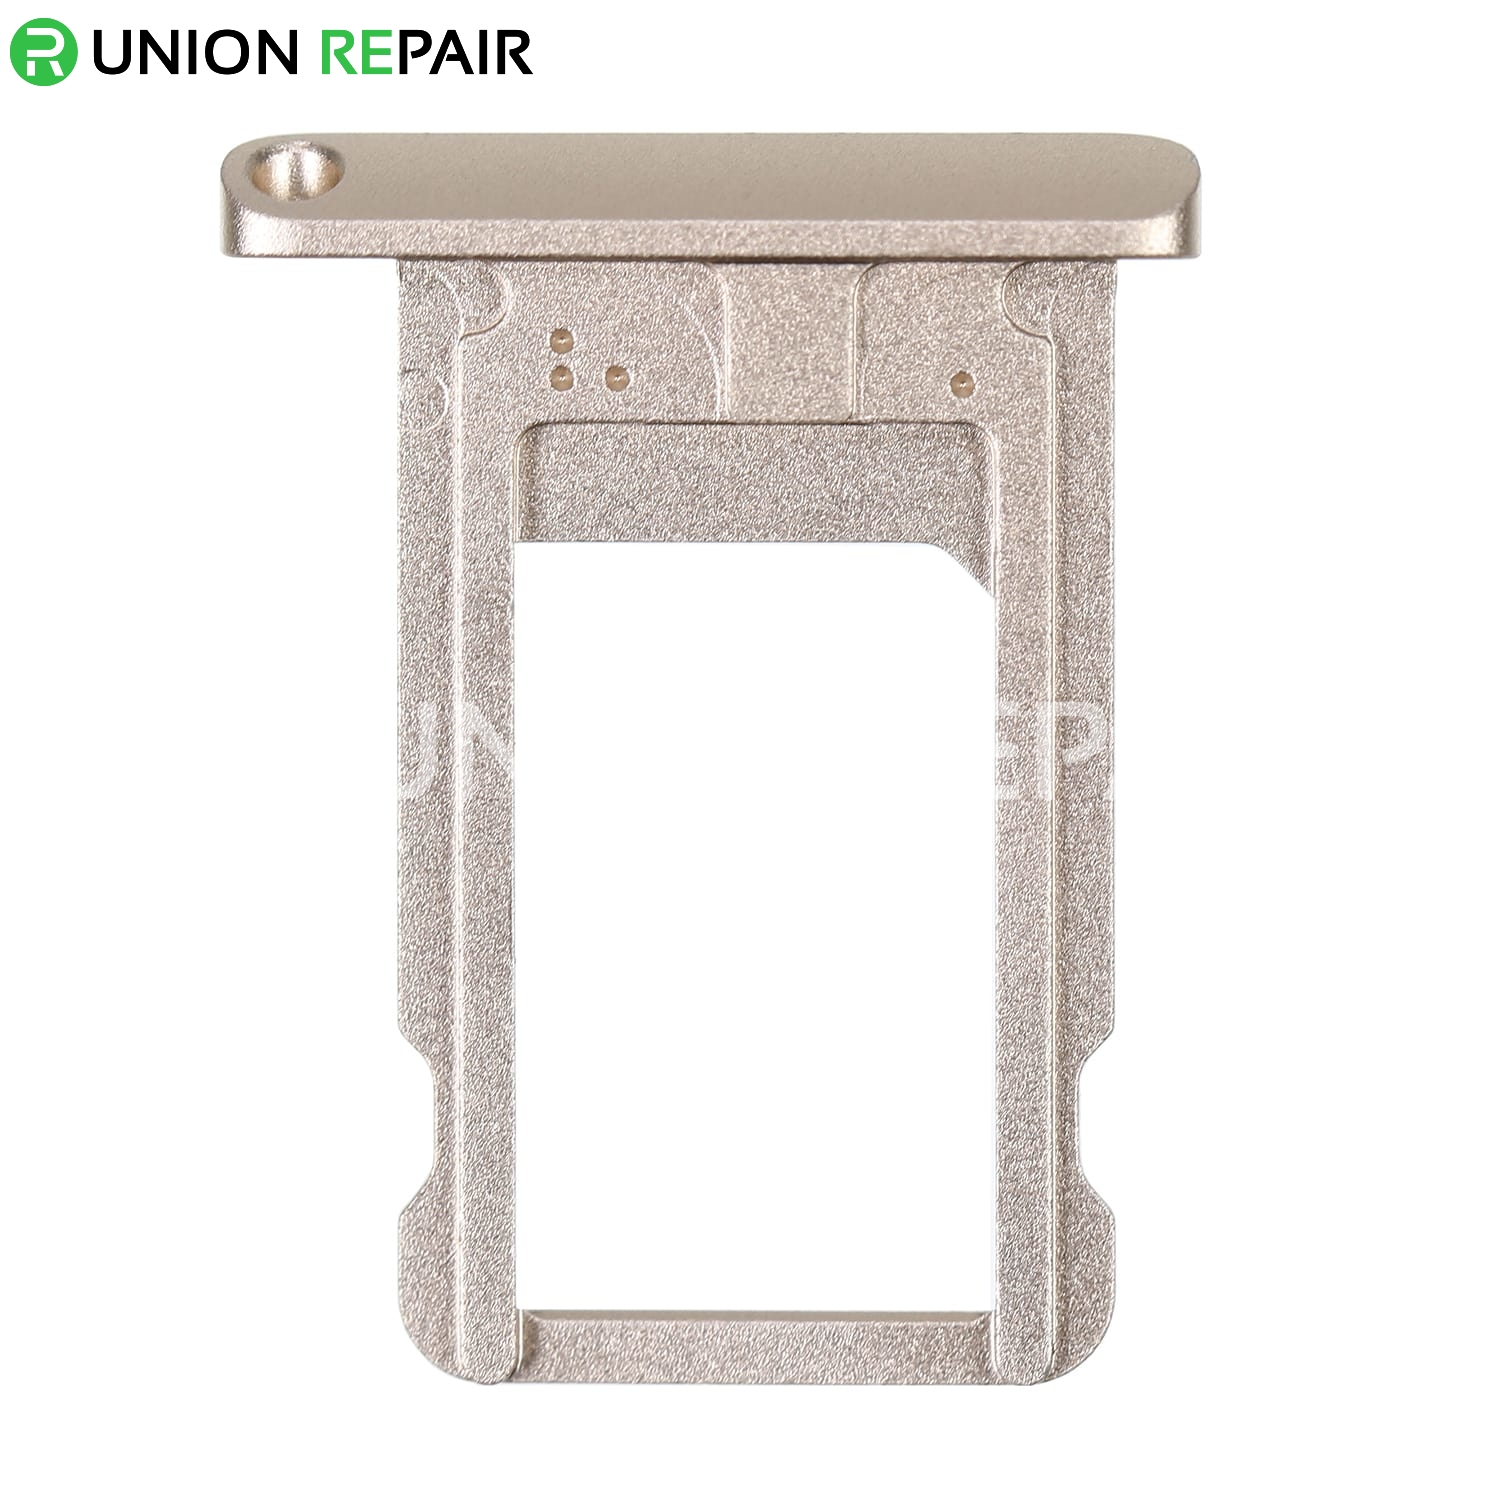 Replacement for iPad 6 SIM Card Tray - Gold